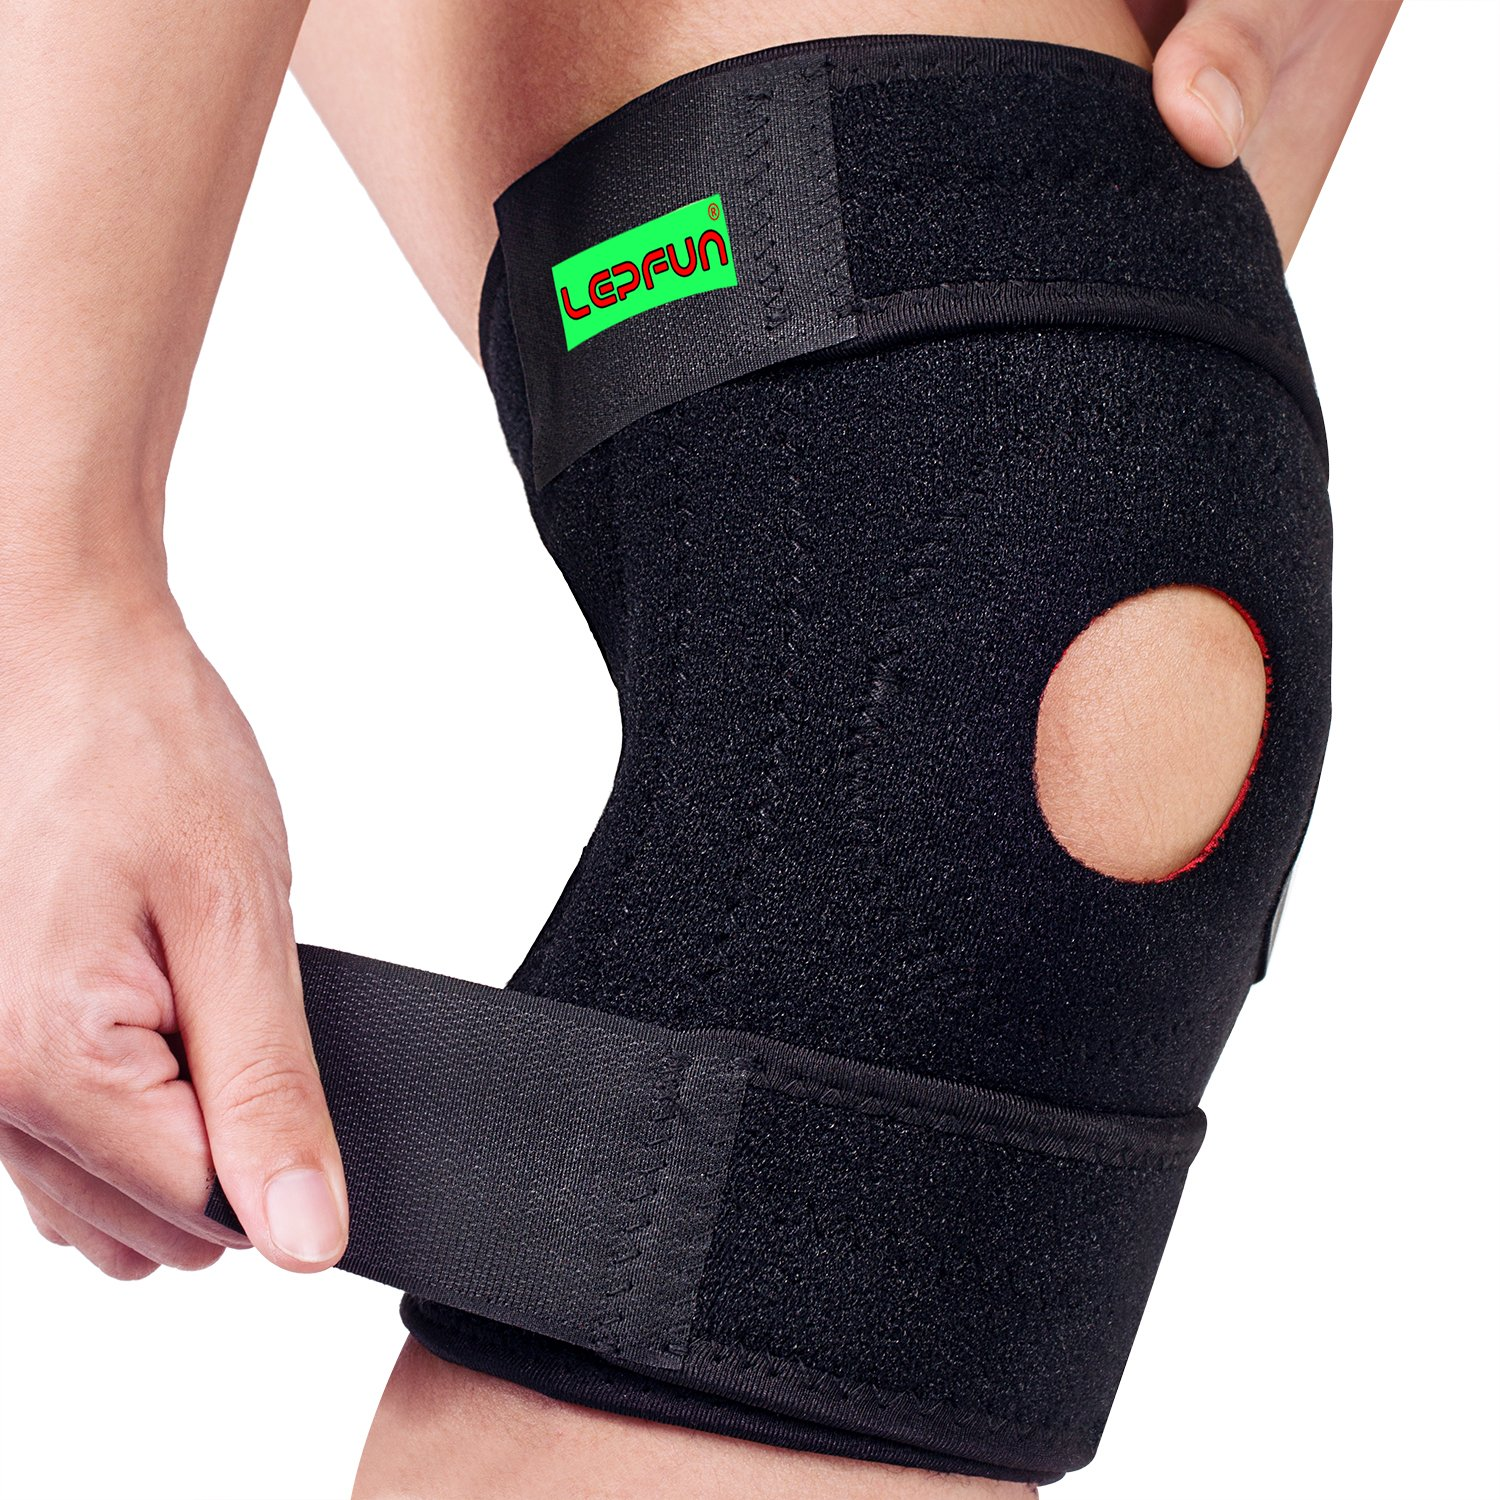 f4bbeb5e46 Lepfun S5200 Knee Brace Support with Open Patella Protector Wrap and  Lateral Stabilizers for Hiking,Basketball, Arthritis, Joint Pain, Meniscus  Tear and ...